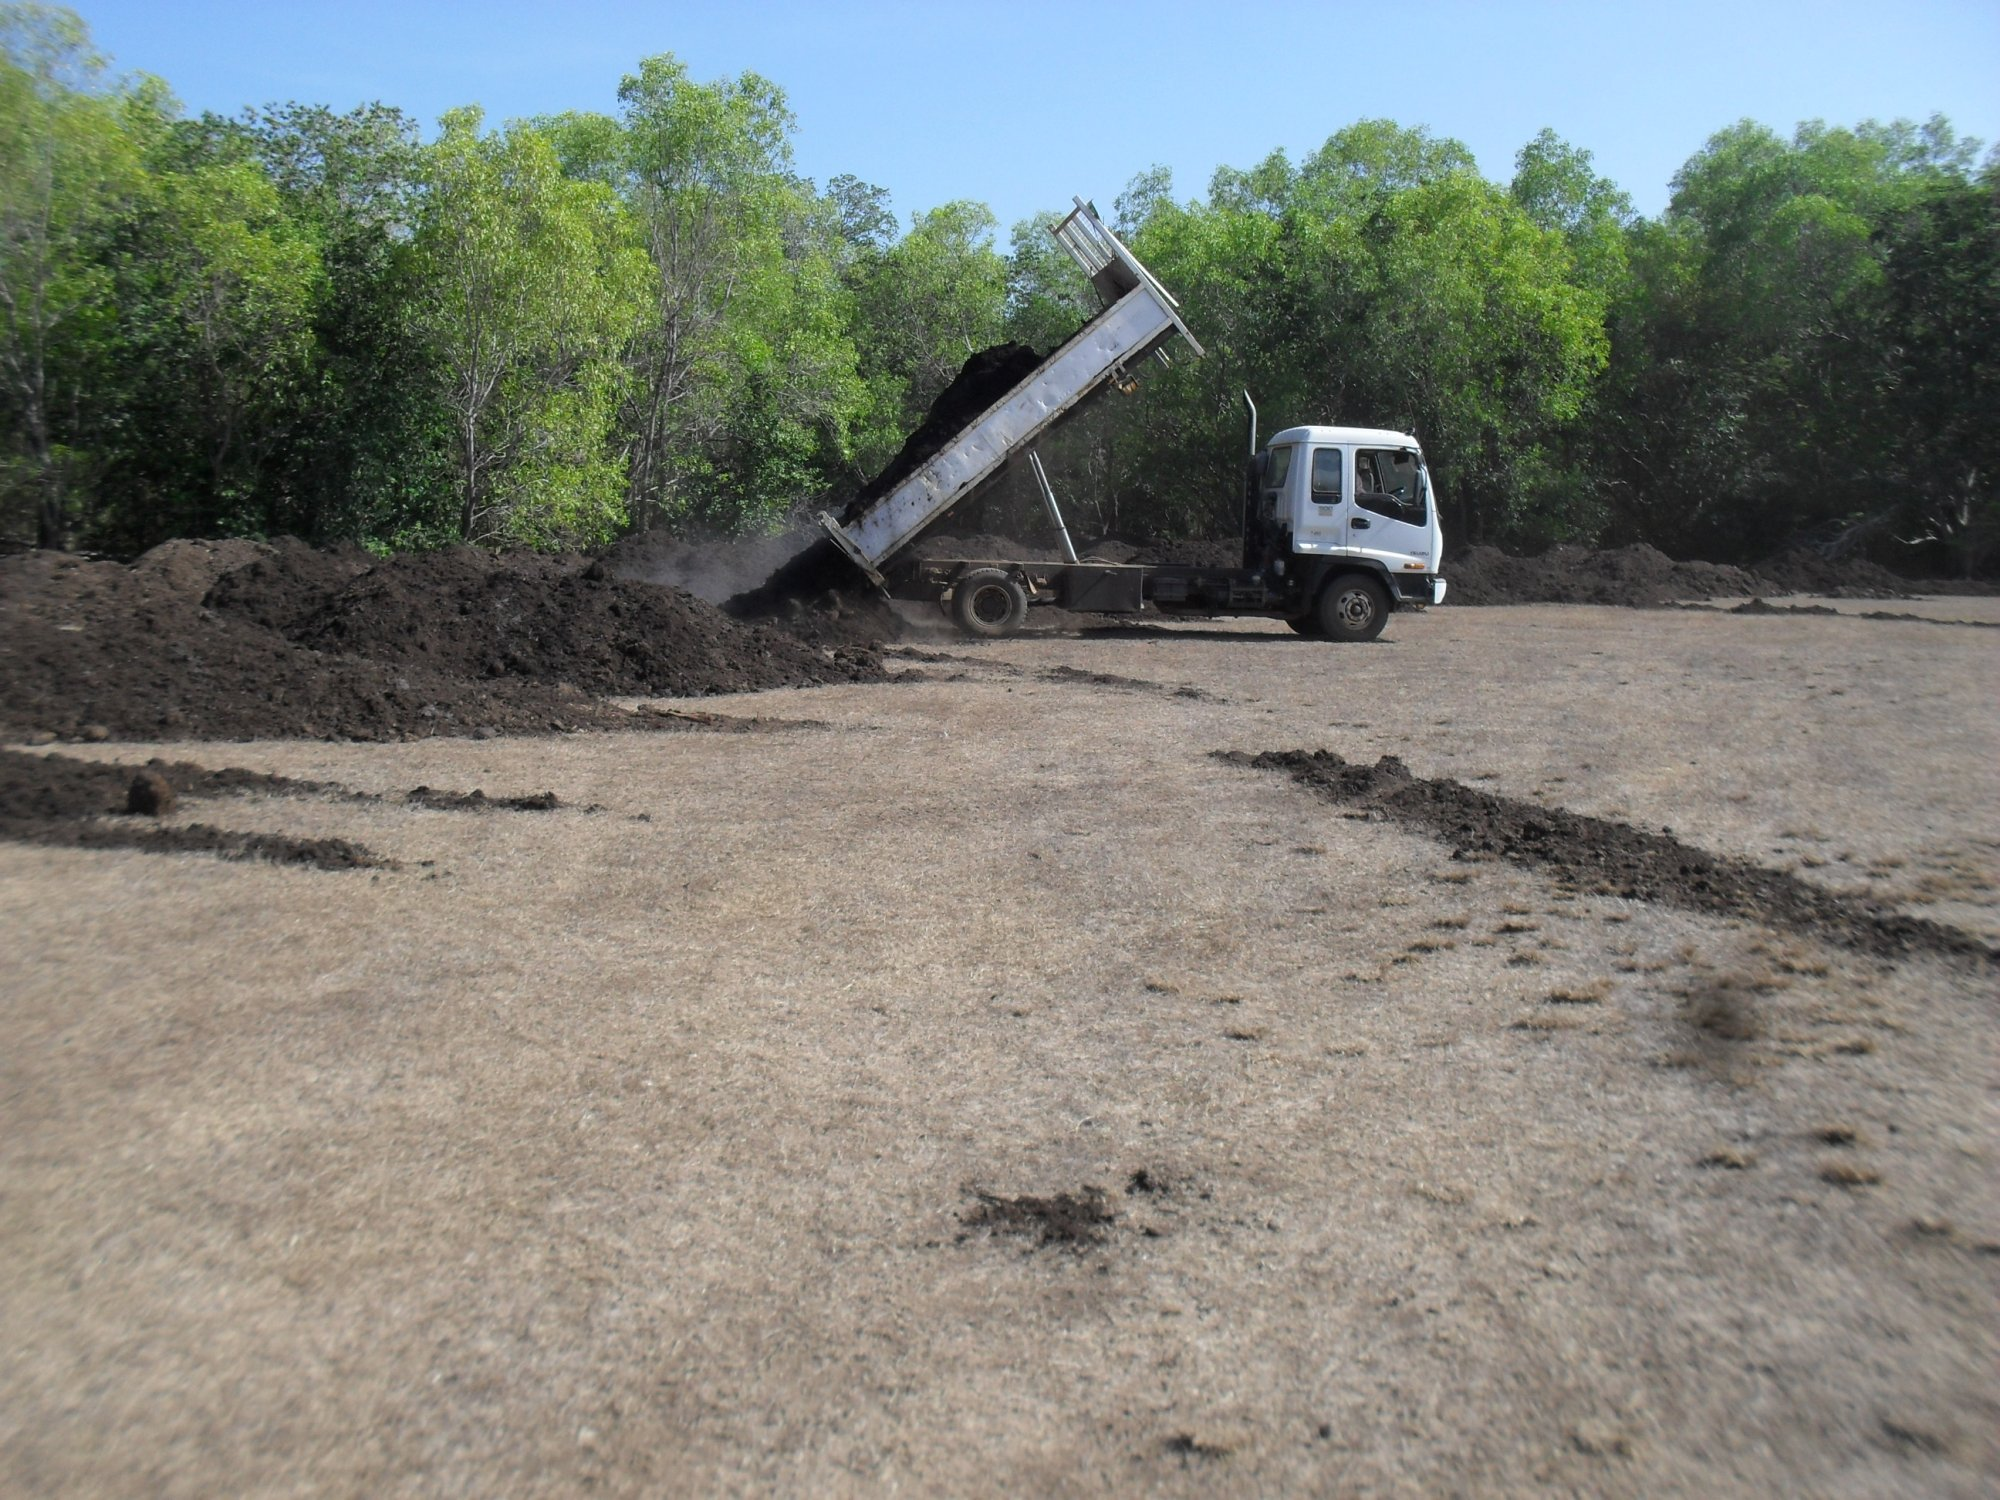 Stage 1 preparing the soil - revegitation of monsoon rainforest at East Point Reserve